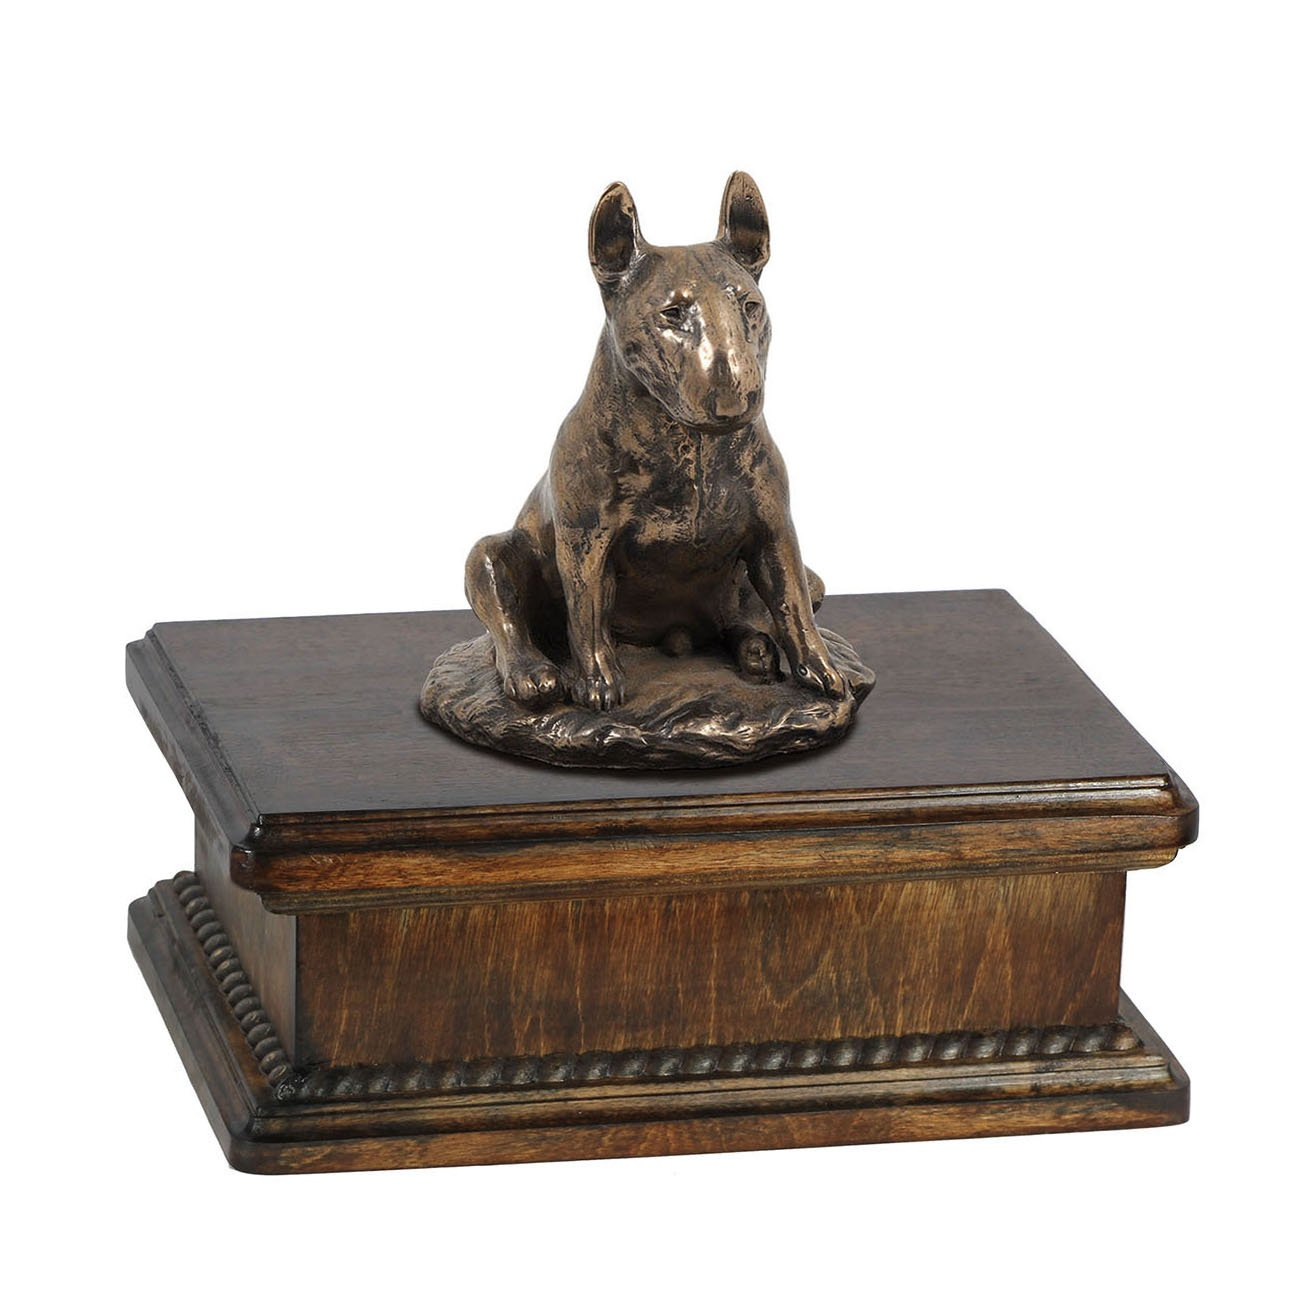 Bull Terrier (sitting), memorial, urn for dog's ashes, with dog statue, exclusive, ArtDog